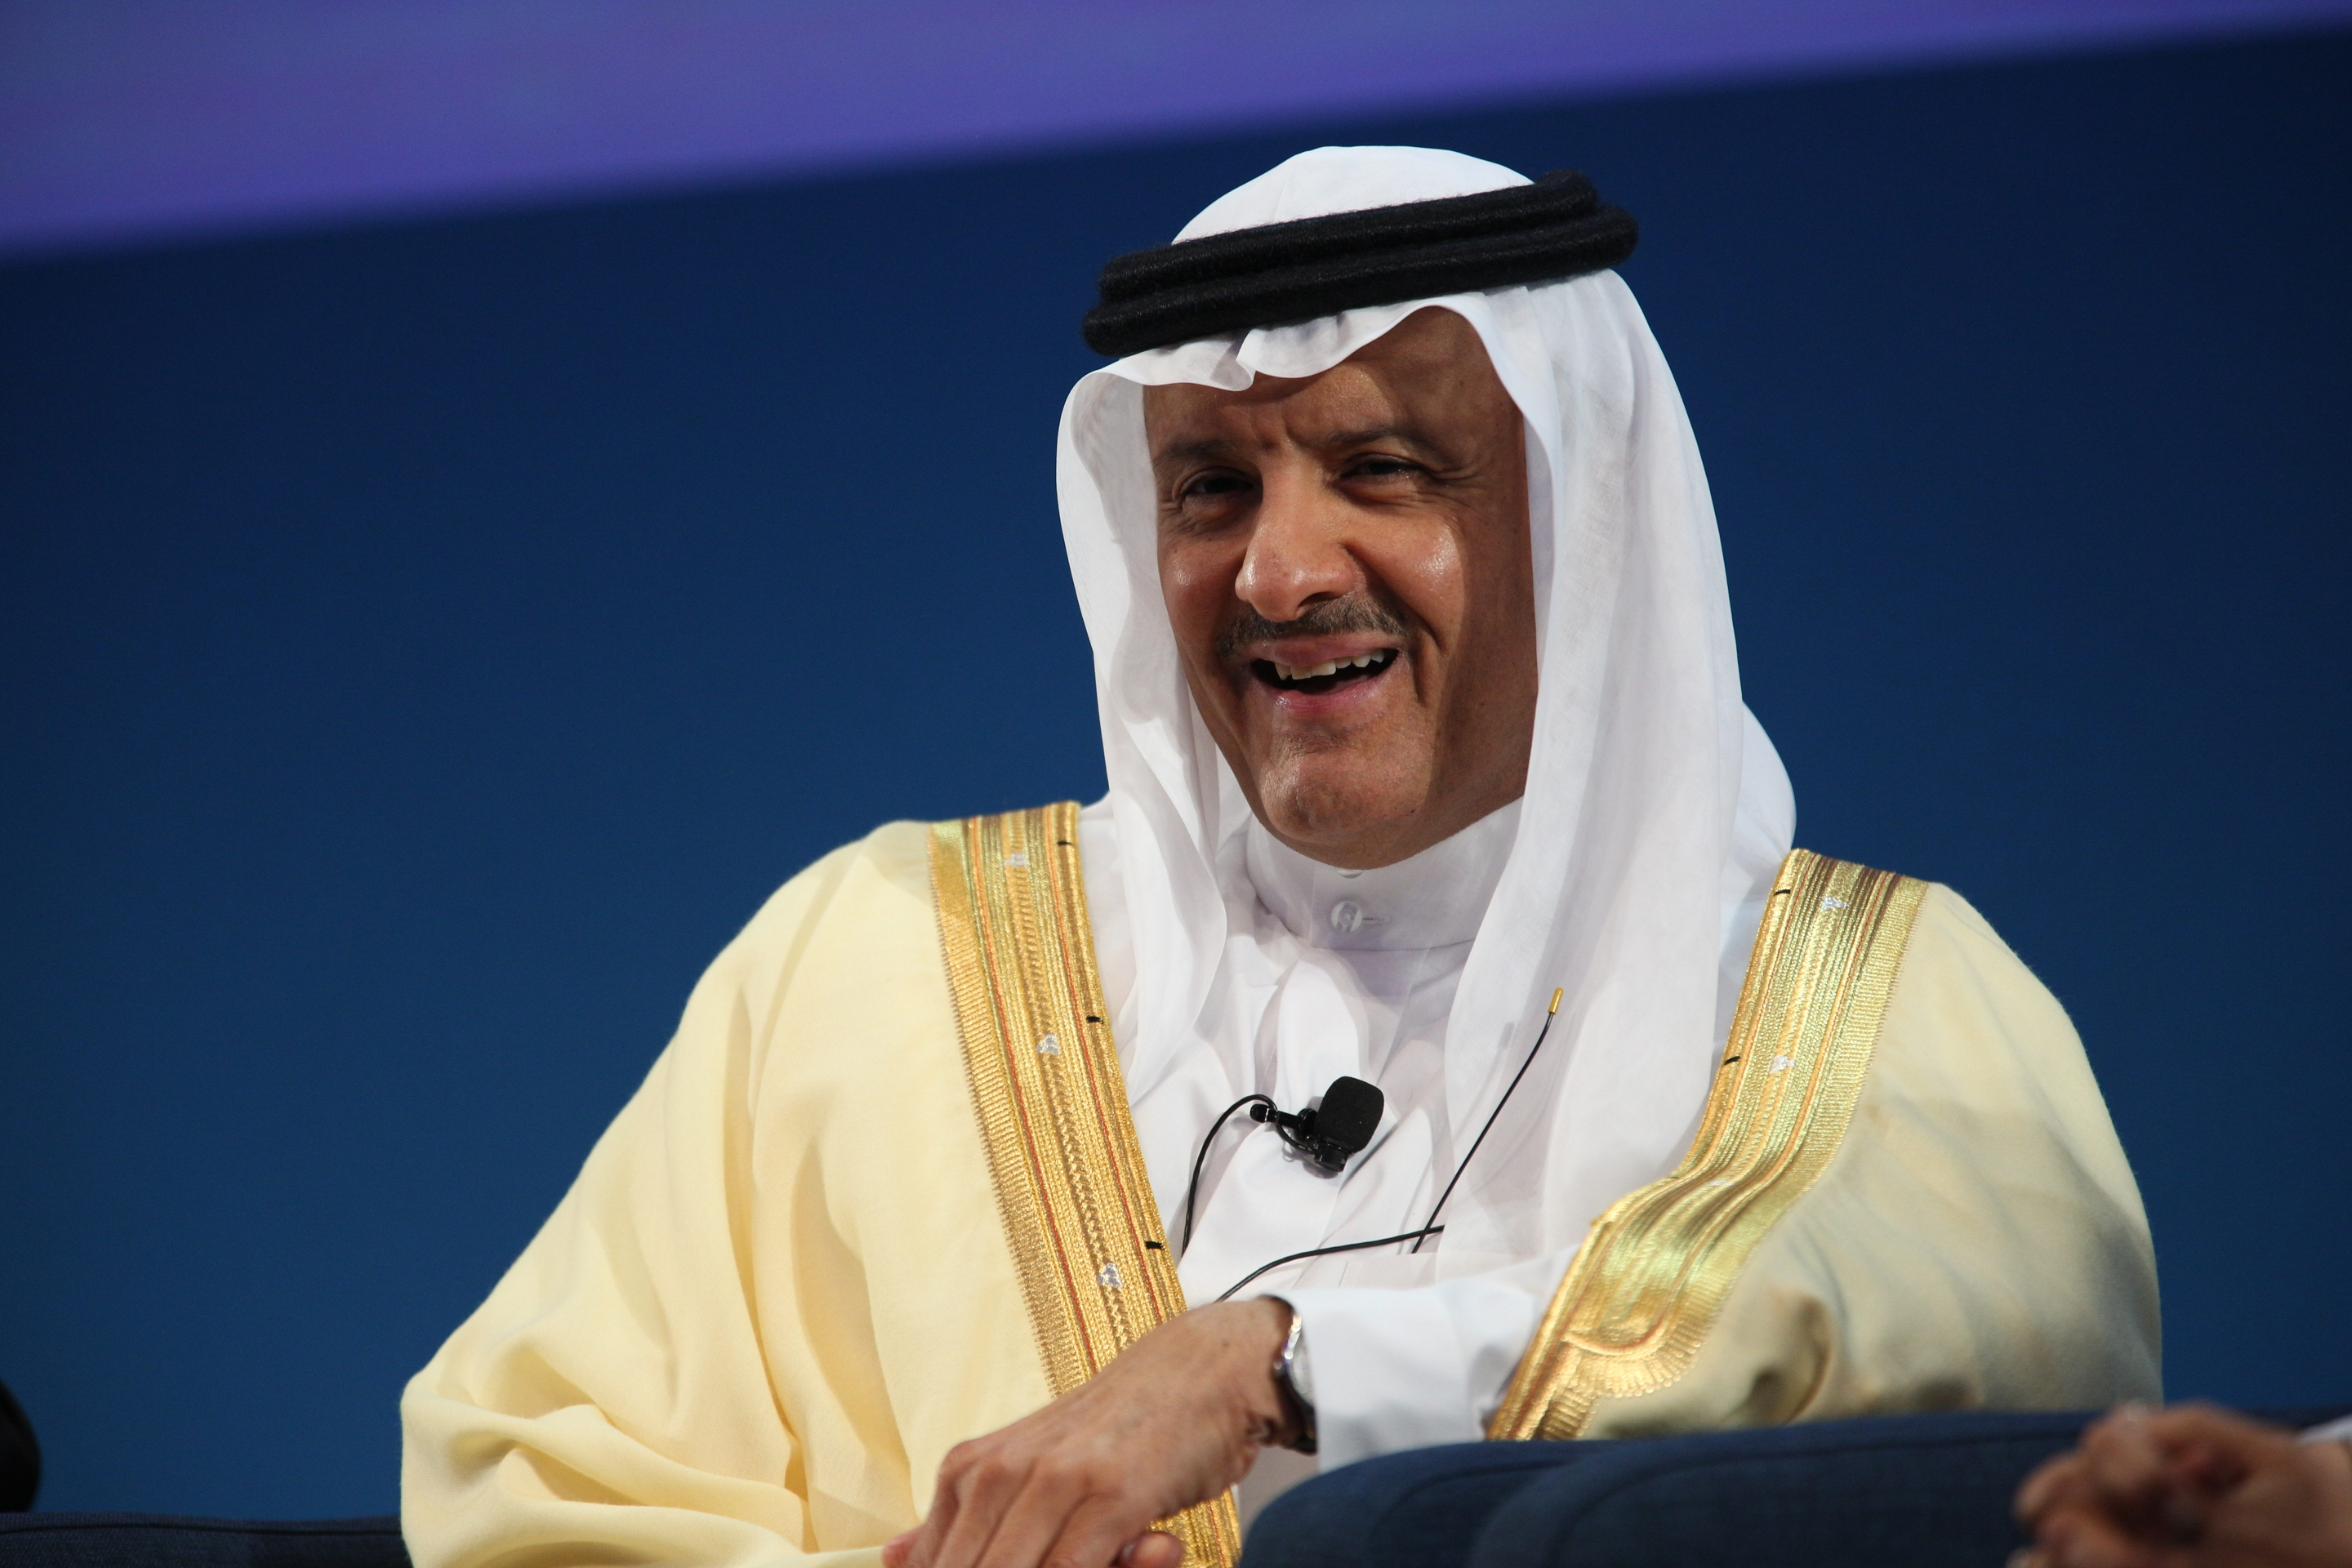 https://spacewatch.global/wp-content/uploads/2018/12/HRH_Prince_Sultan_bin_Salman_bin_Abdulaziz_Al-Saud_the_Chairman__President_of_the_Saudi_Commission_for_Tourism_and_National_Heritage_26006959140.jpg